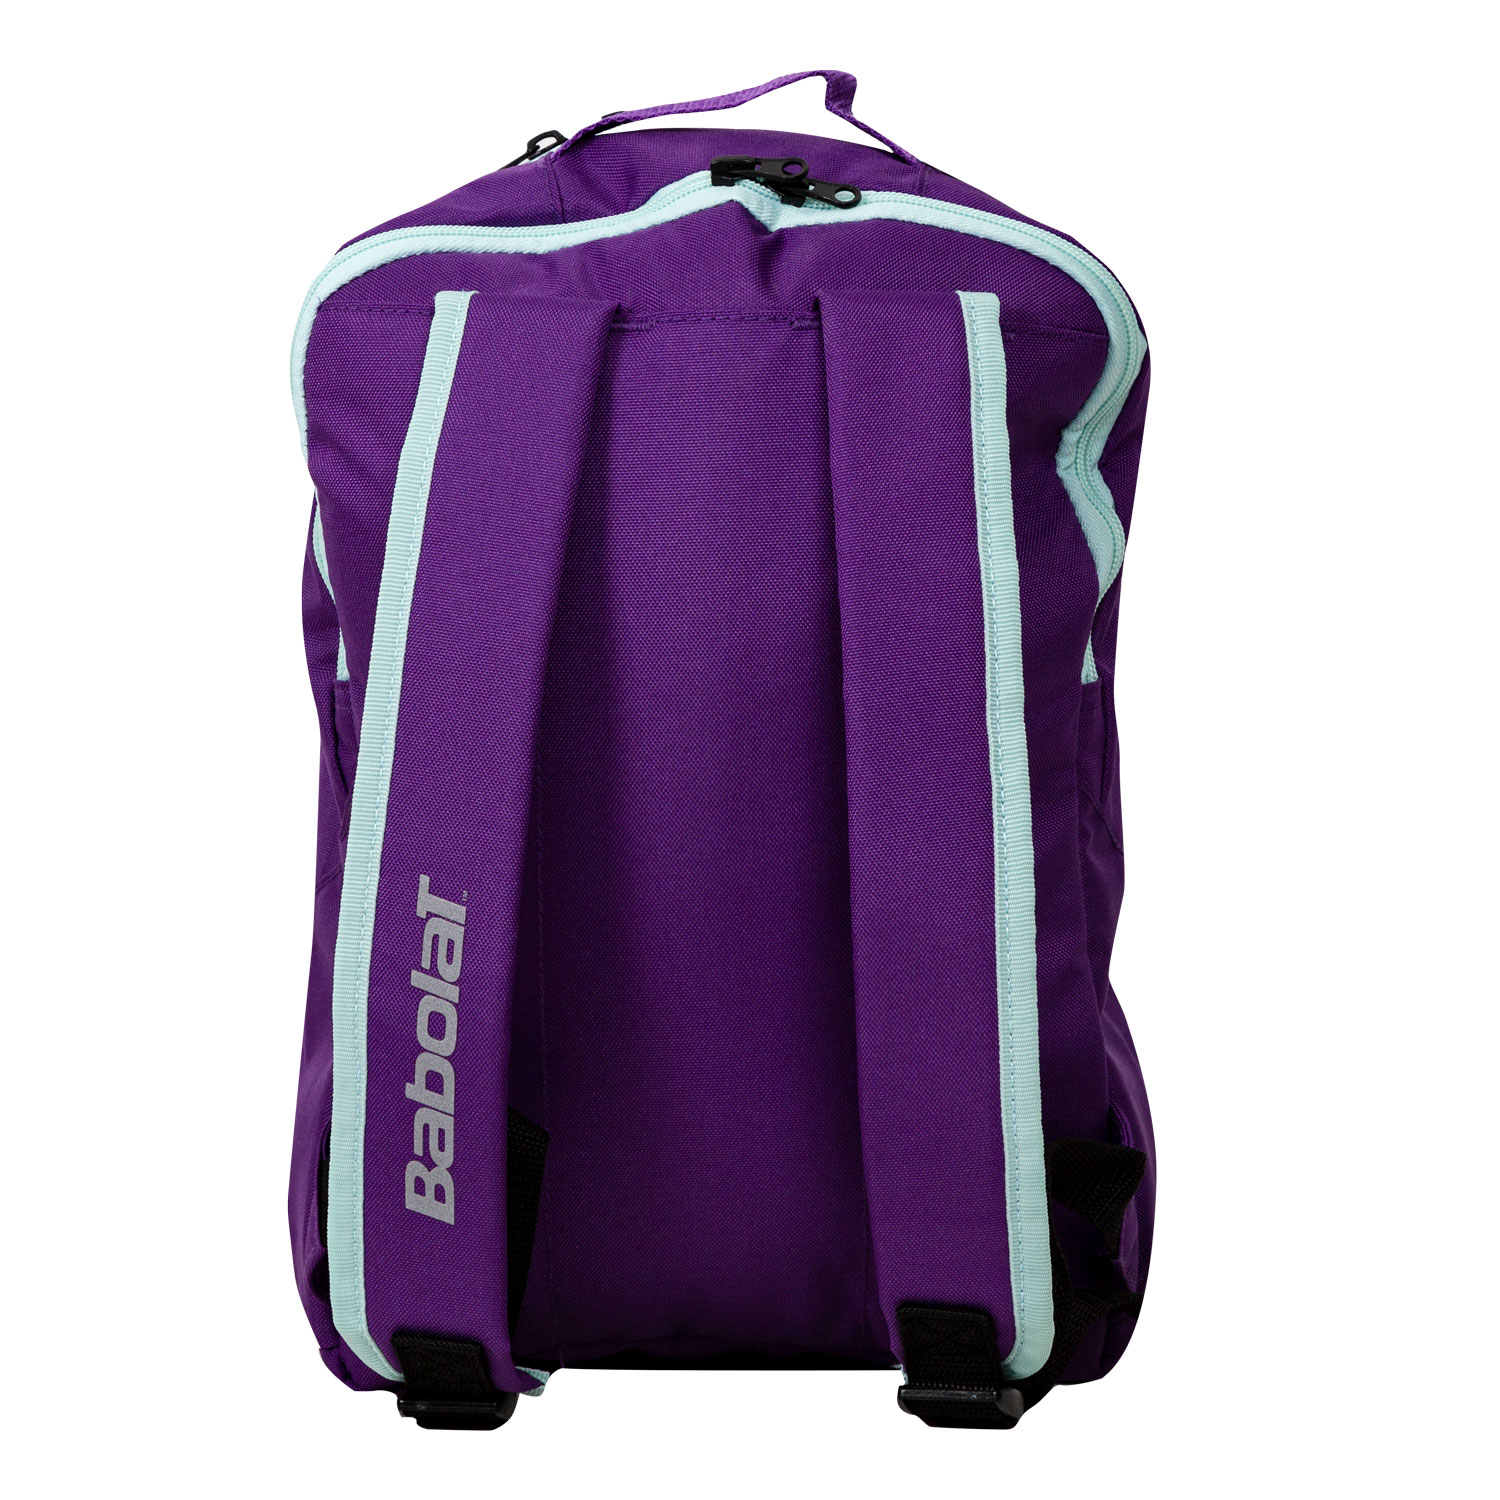 Теннисный рюкзак Babolat CLUB BACKPACK JUNIOR PURPLE . Фото ¹2